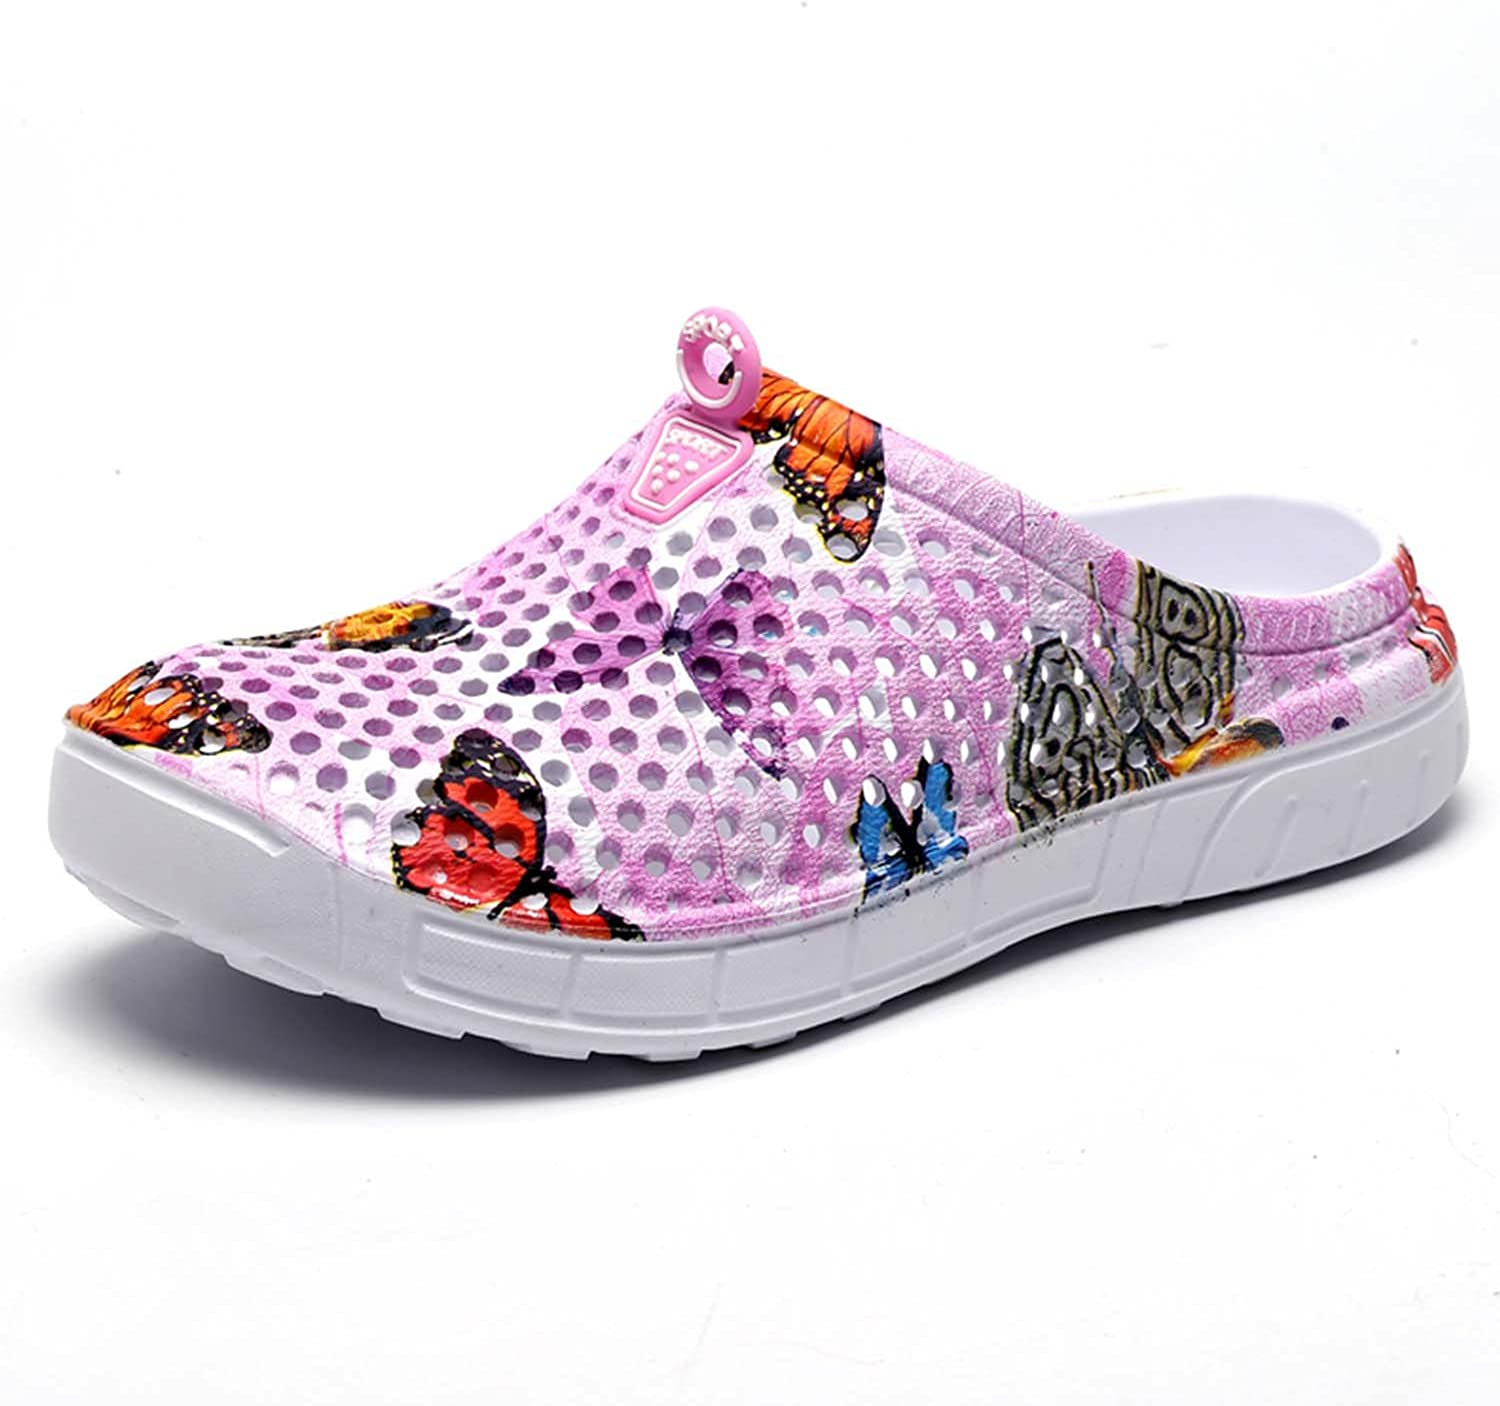 HMAIBO Garden Clogs Shoes Womens Mens Breathable Mule Sandals Water Slippers Footwear